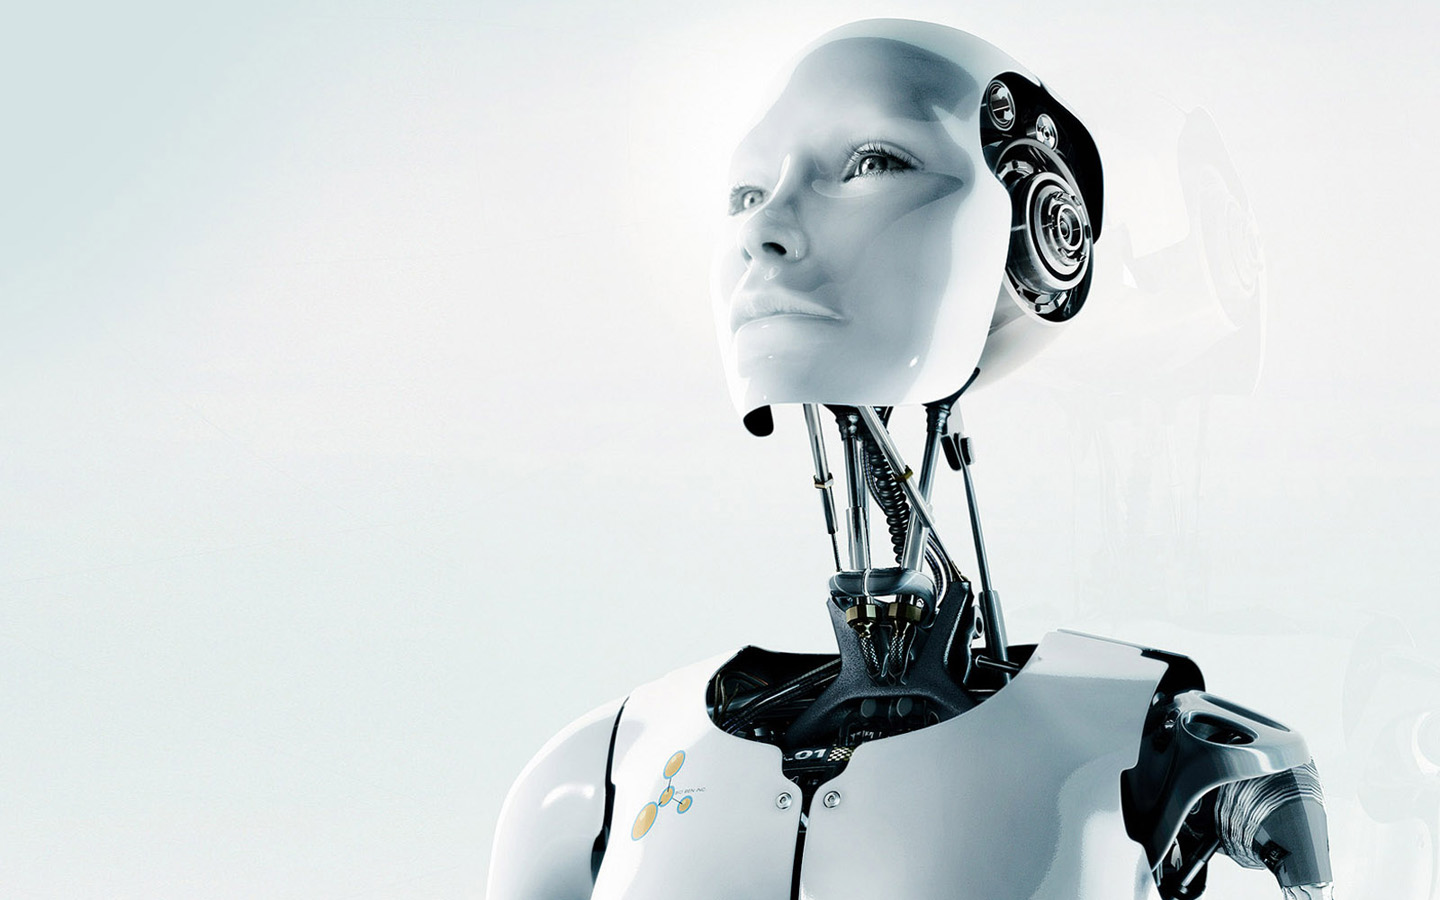 ai and robotics Ai is one of the technologies that could revolutionize the world, some people call it the electricity of the twenty first century researchers and professionals need to be aware of the ethical and social implications this technology poses we are responsible for making robots and ai systems that.